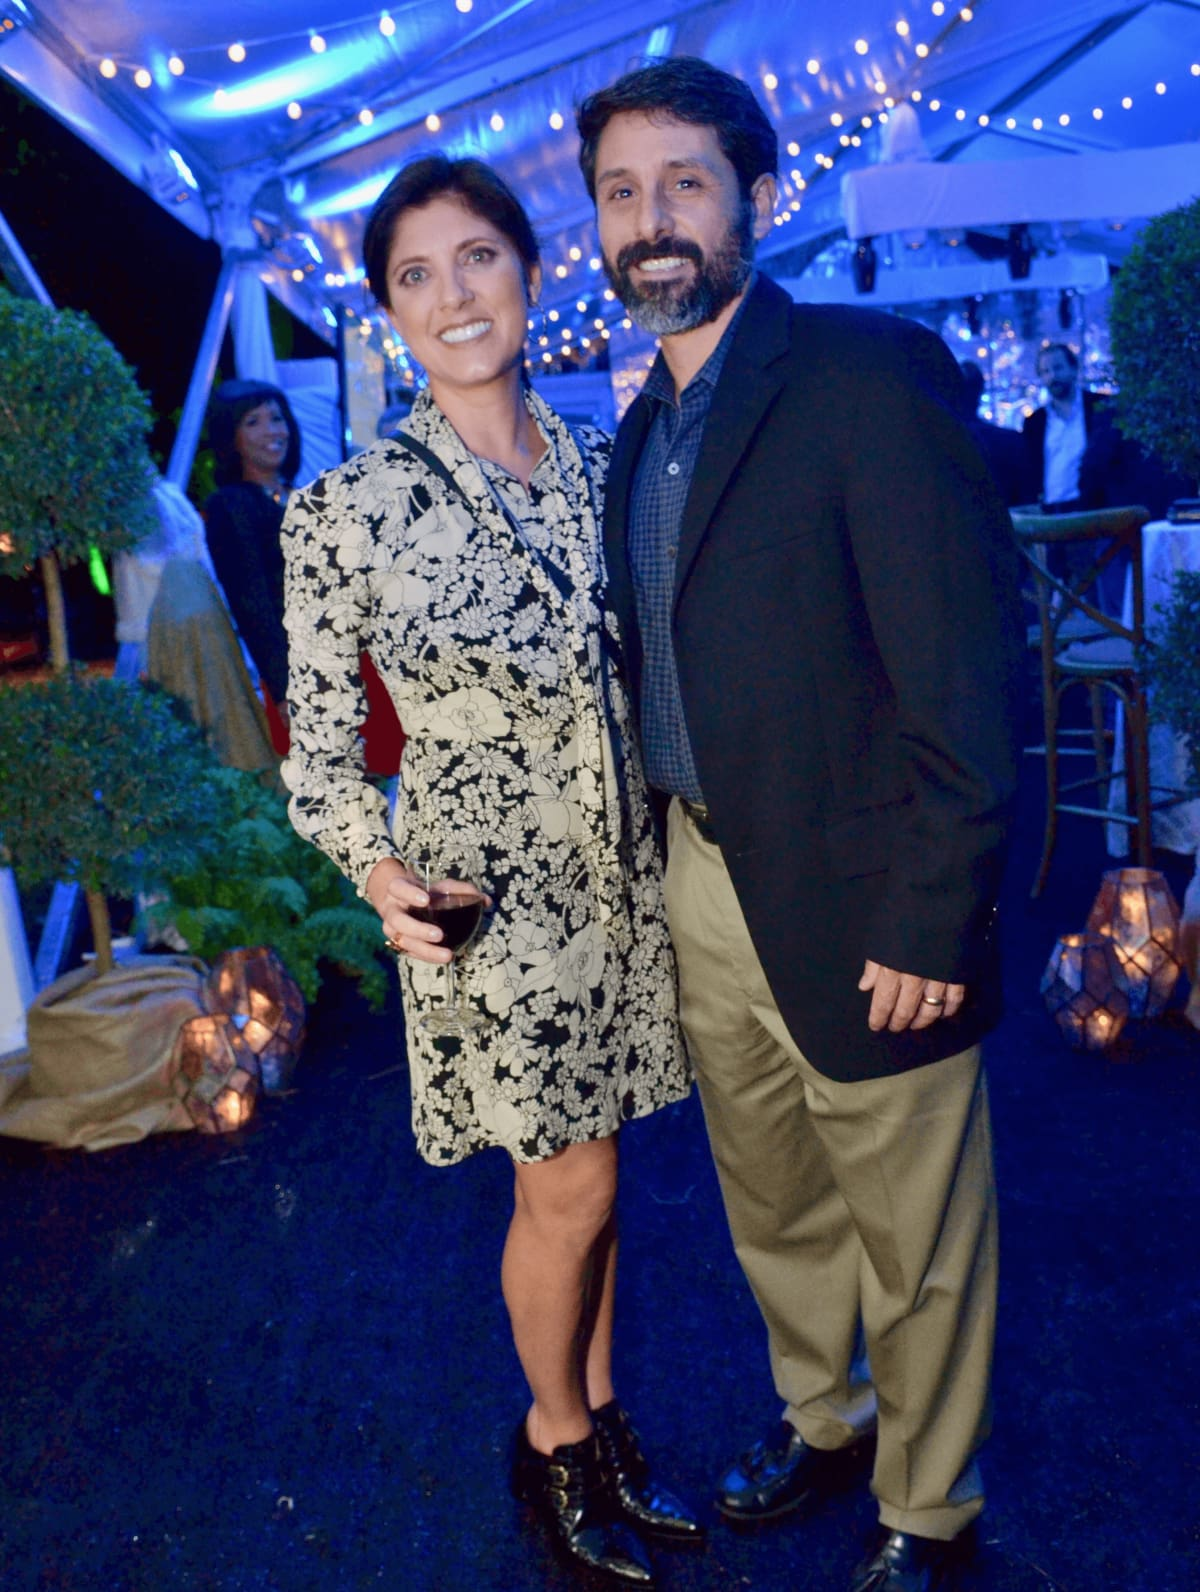 Houston, Susie Bean Gives fundraiser, Dec 2016, Stacey Lindseth, Al Lindseth